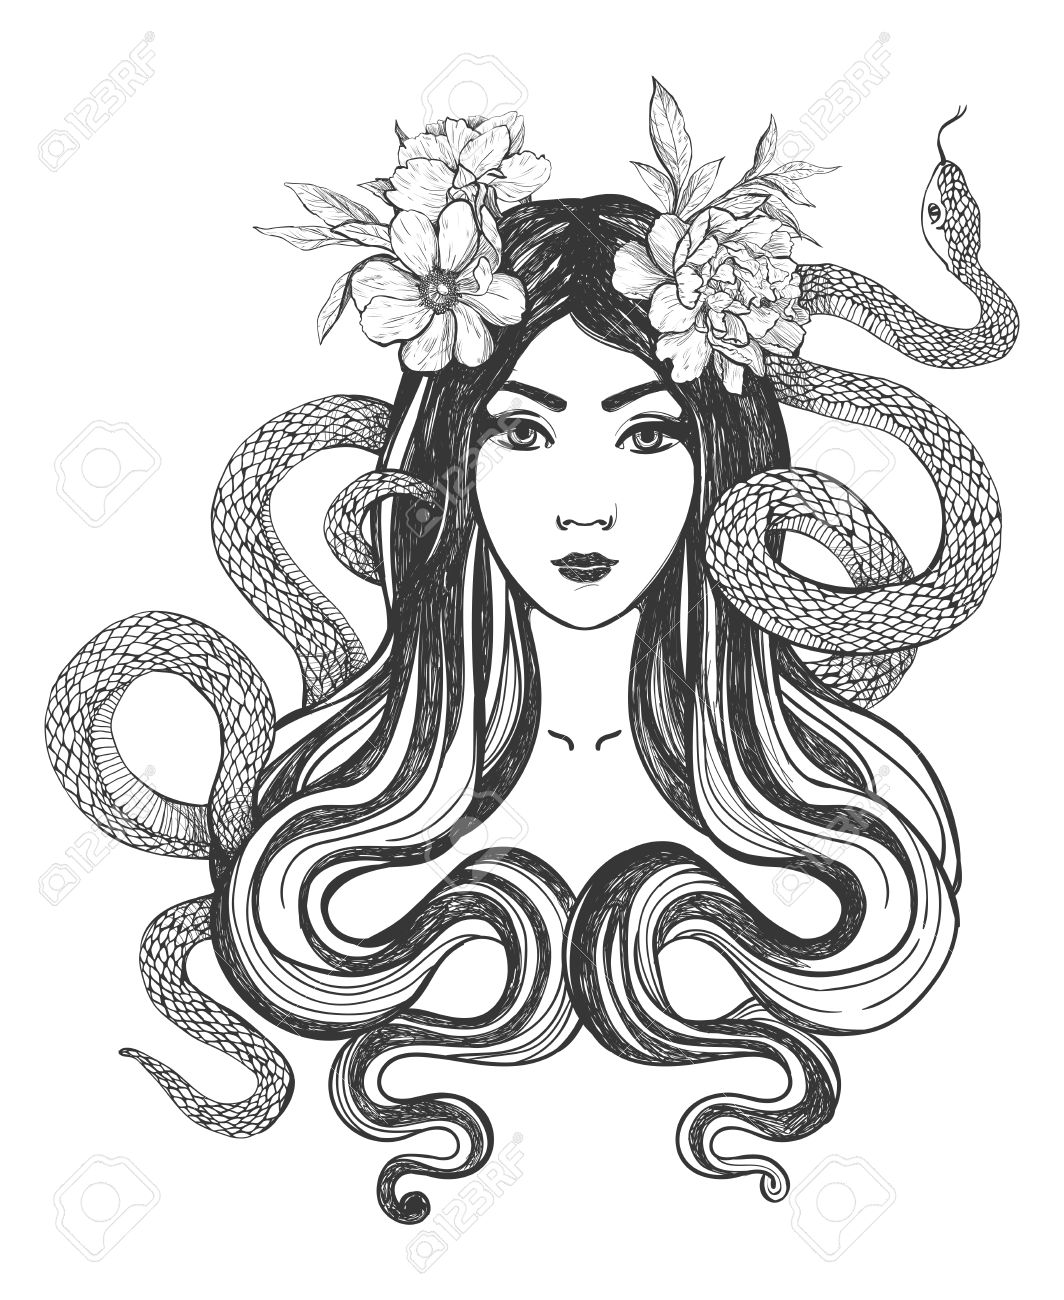 Woman with flowers and snakes. Tattoo art, coloring books. illustration Isolated on white background. - 52783008